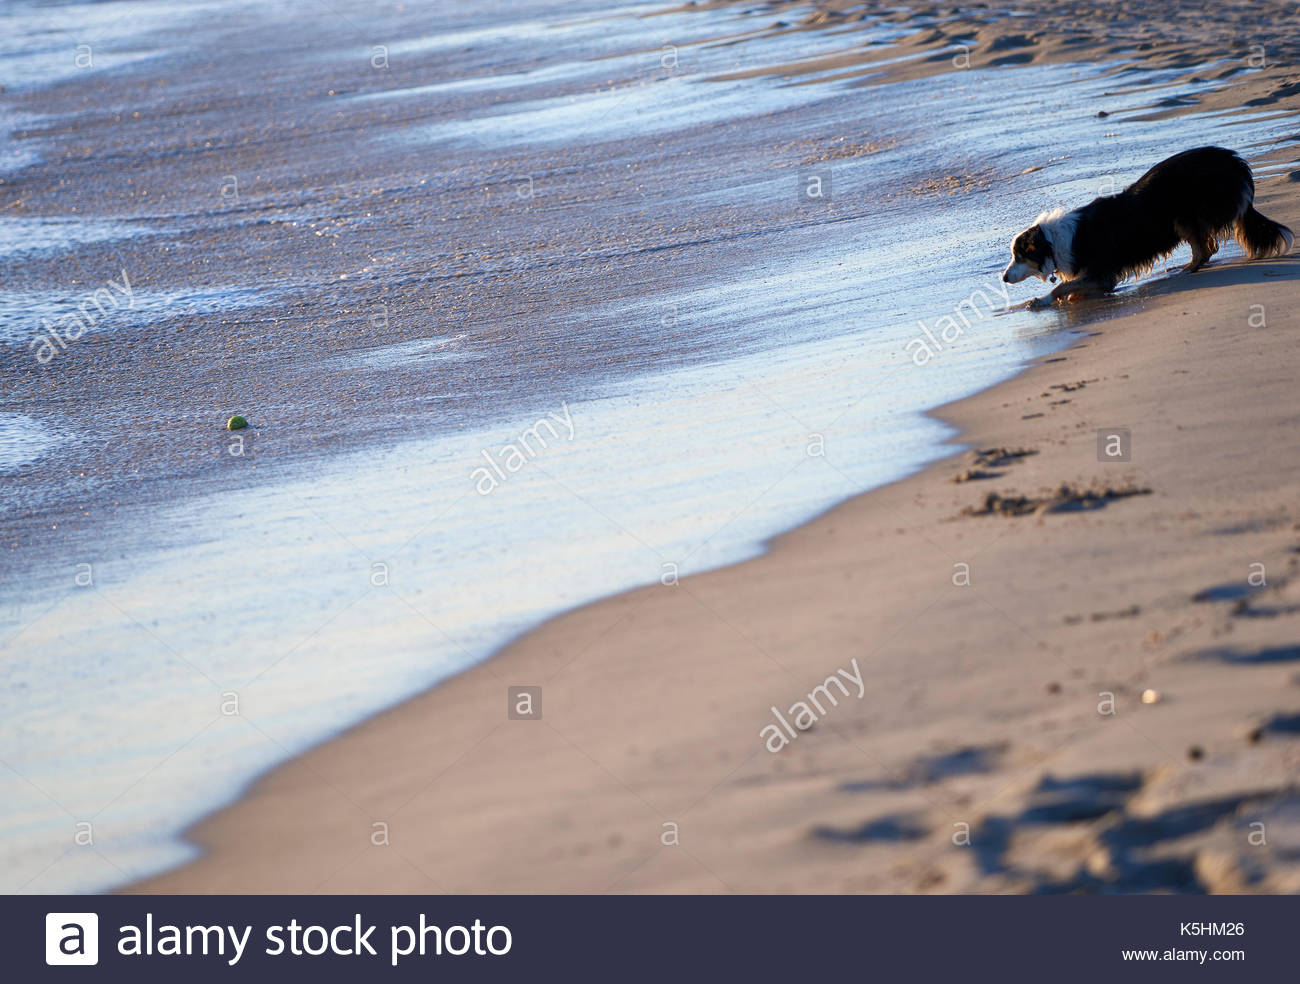 A Border Collie, staring at a tennis ball; waiting for the waves to bring it closer to her.  At the beach near Iluka, NSW, Australia. - Stock Image